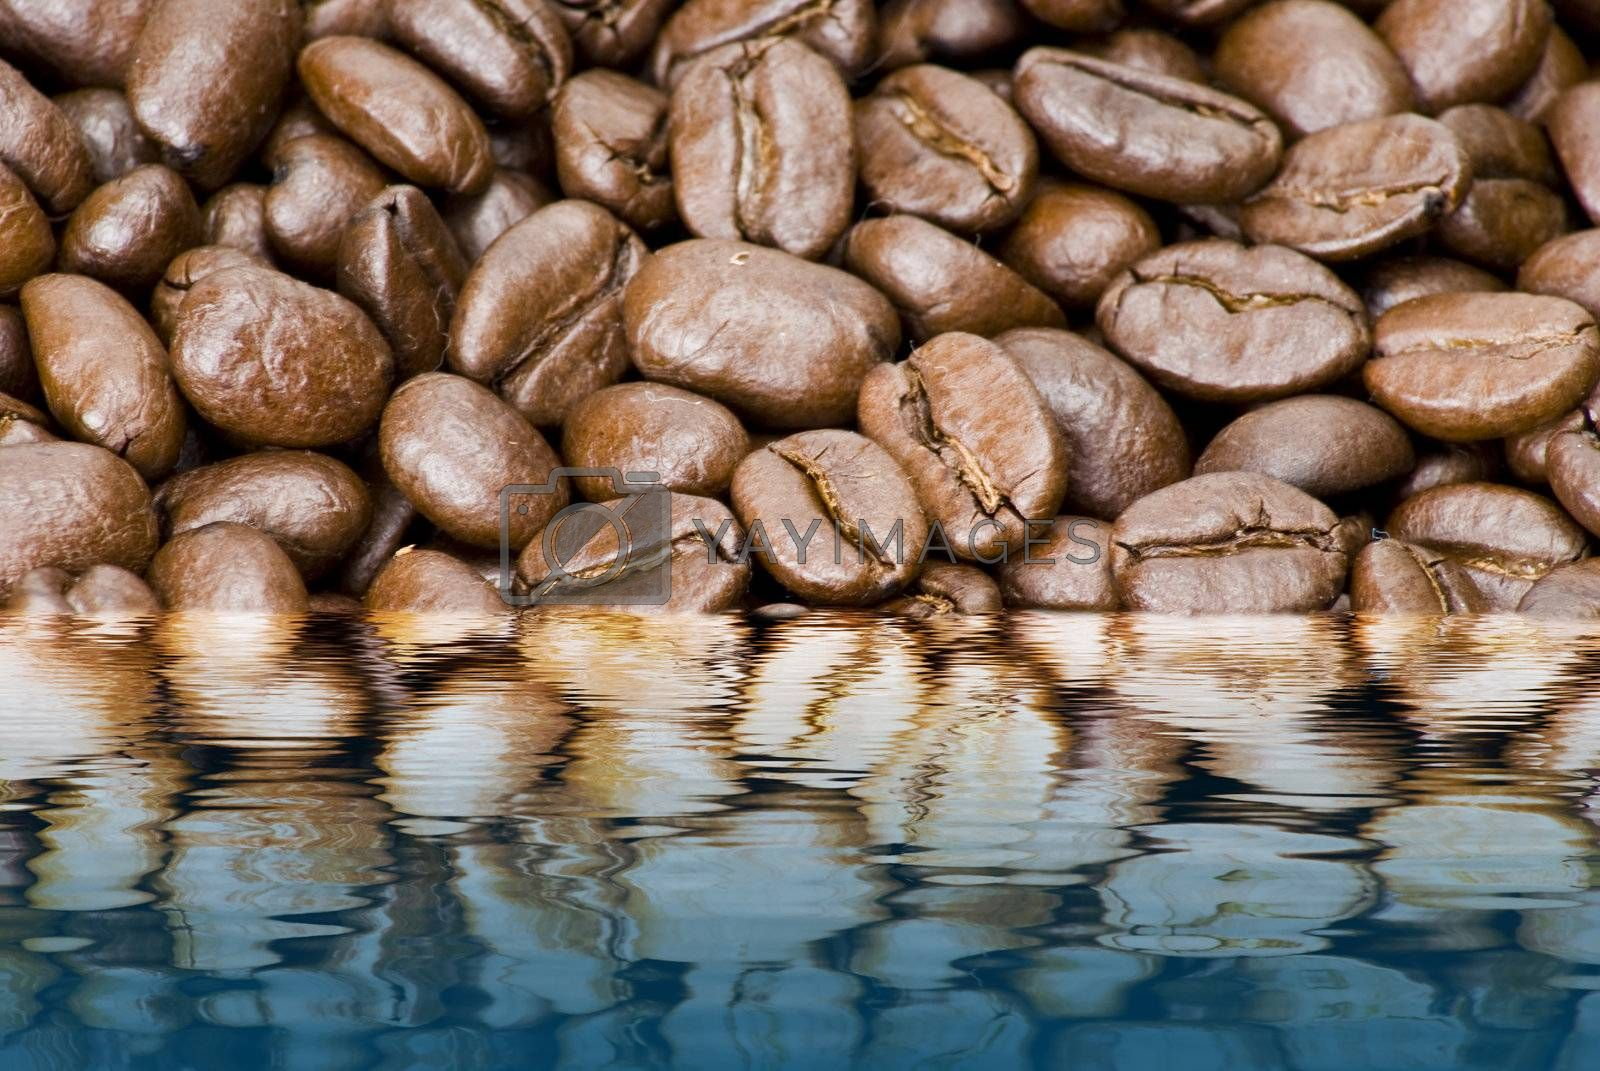 Coffe beans in water reflection by caldix